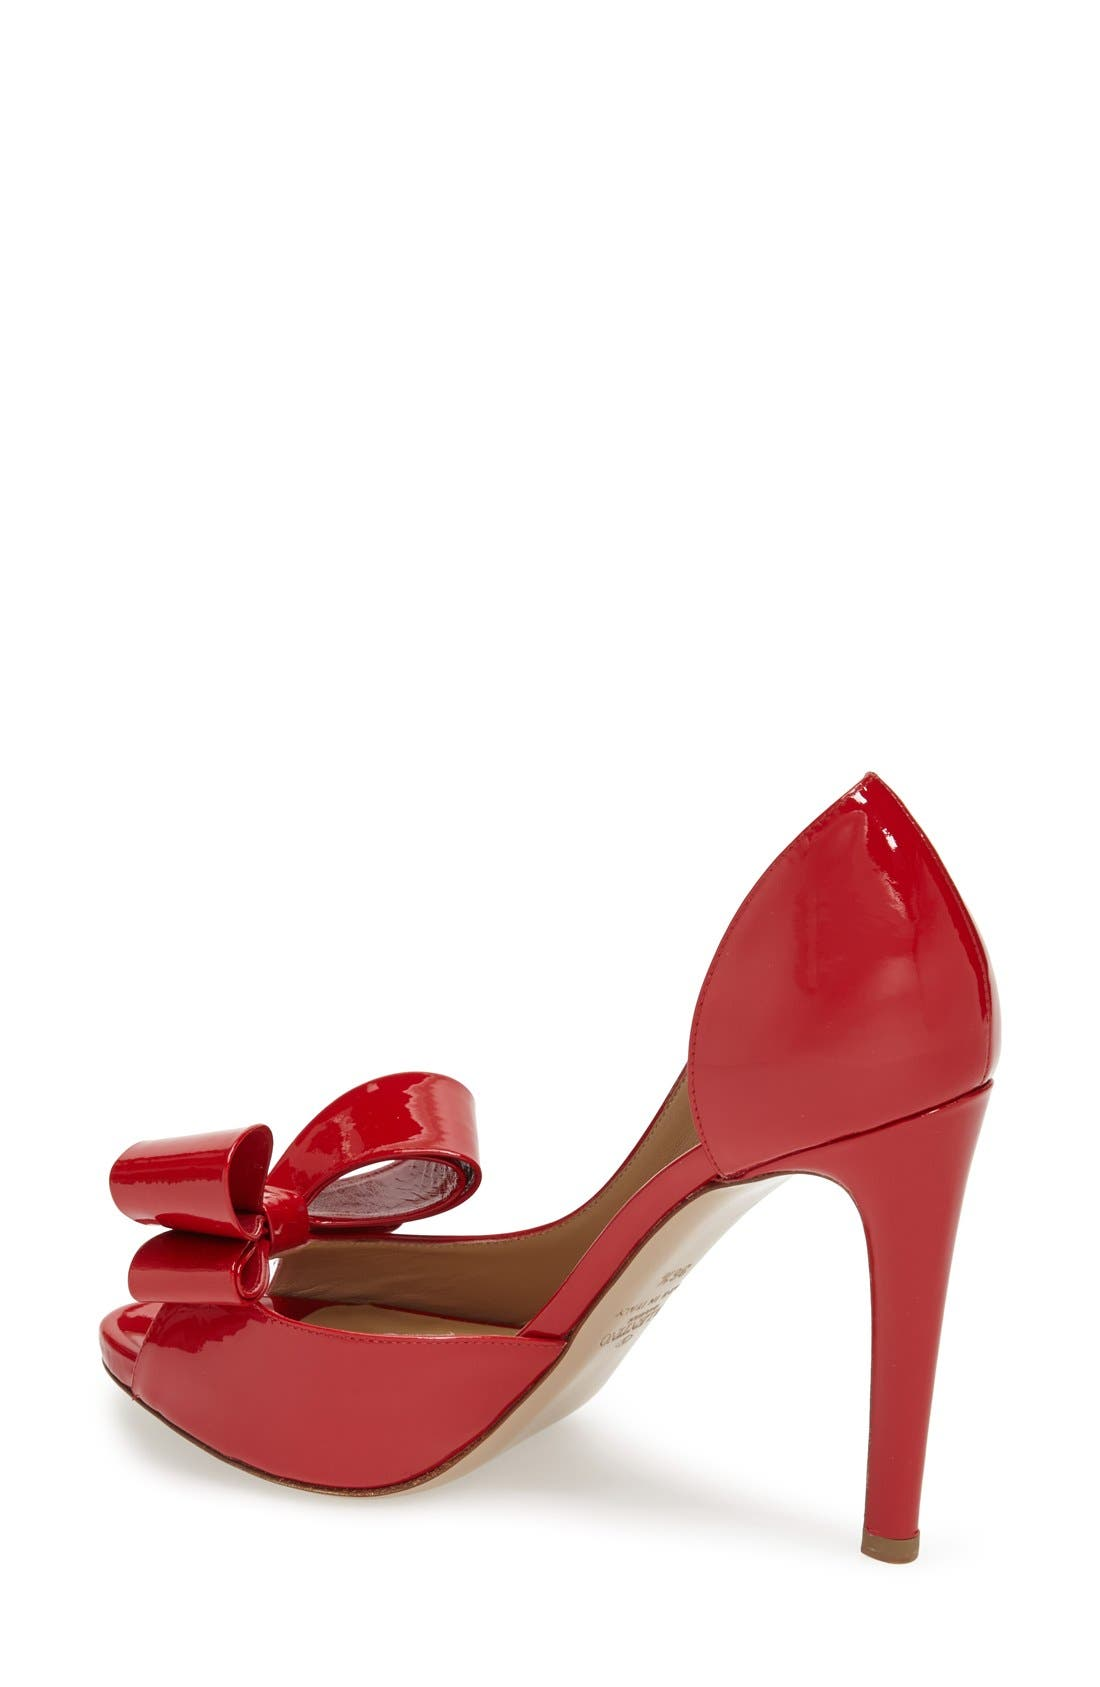 Alternate Image 2  - VALENTINO GARAVANI Couture Bow d'Orsay Pump (Women)